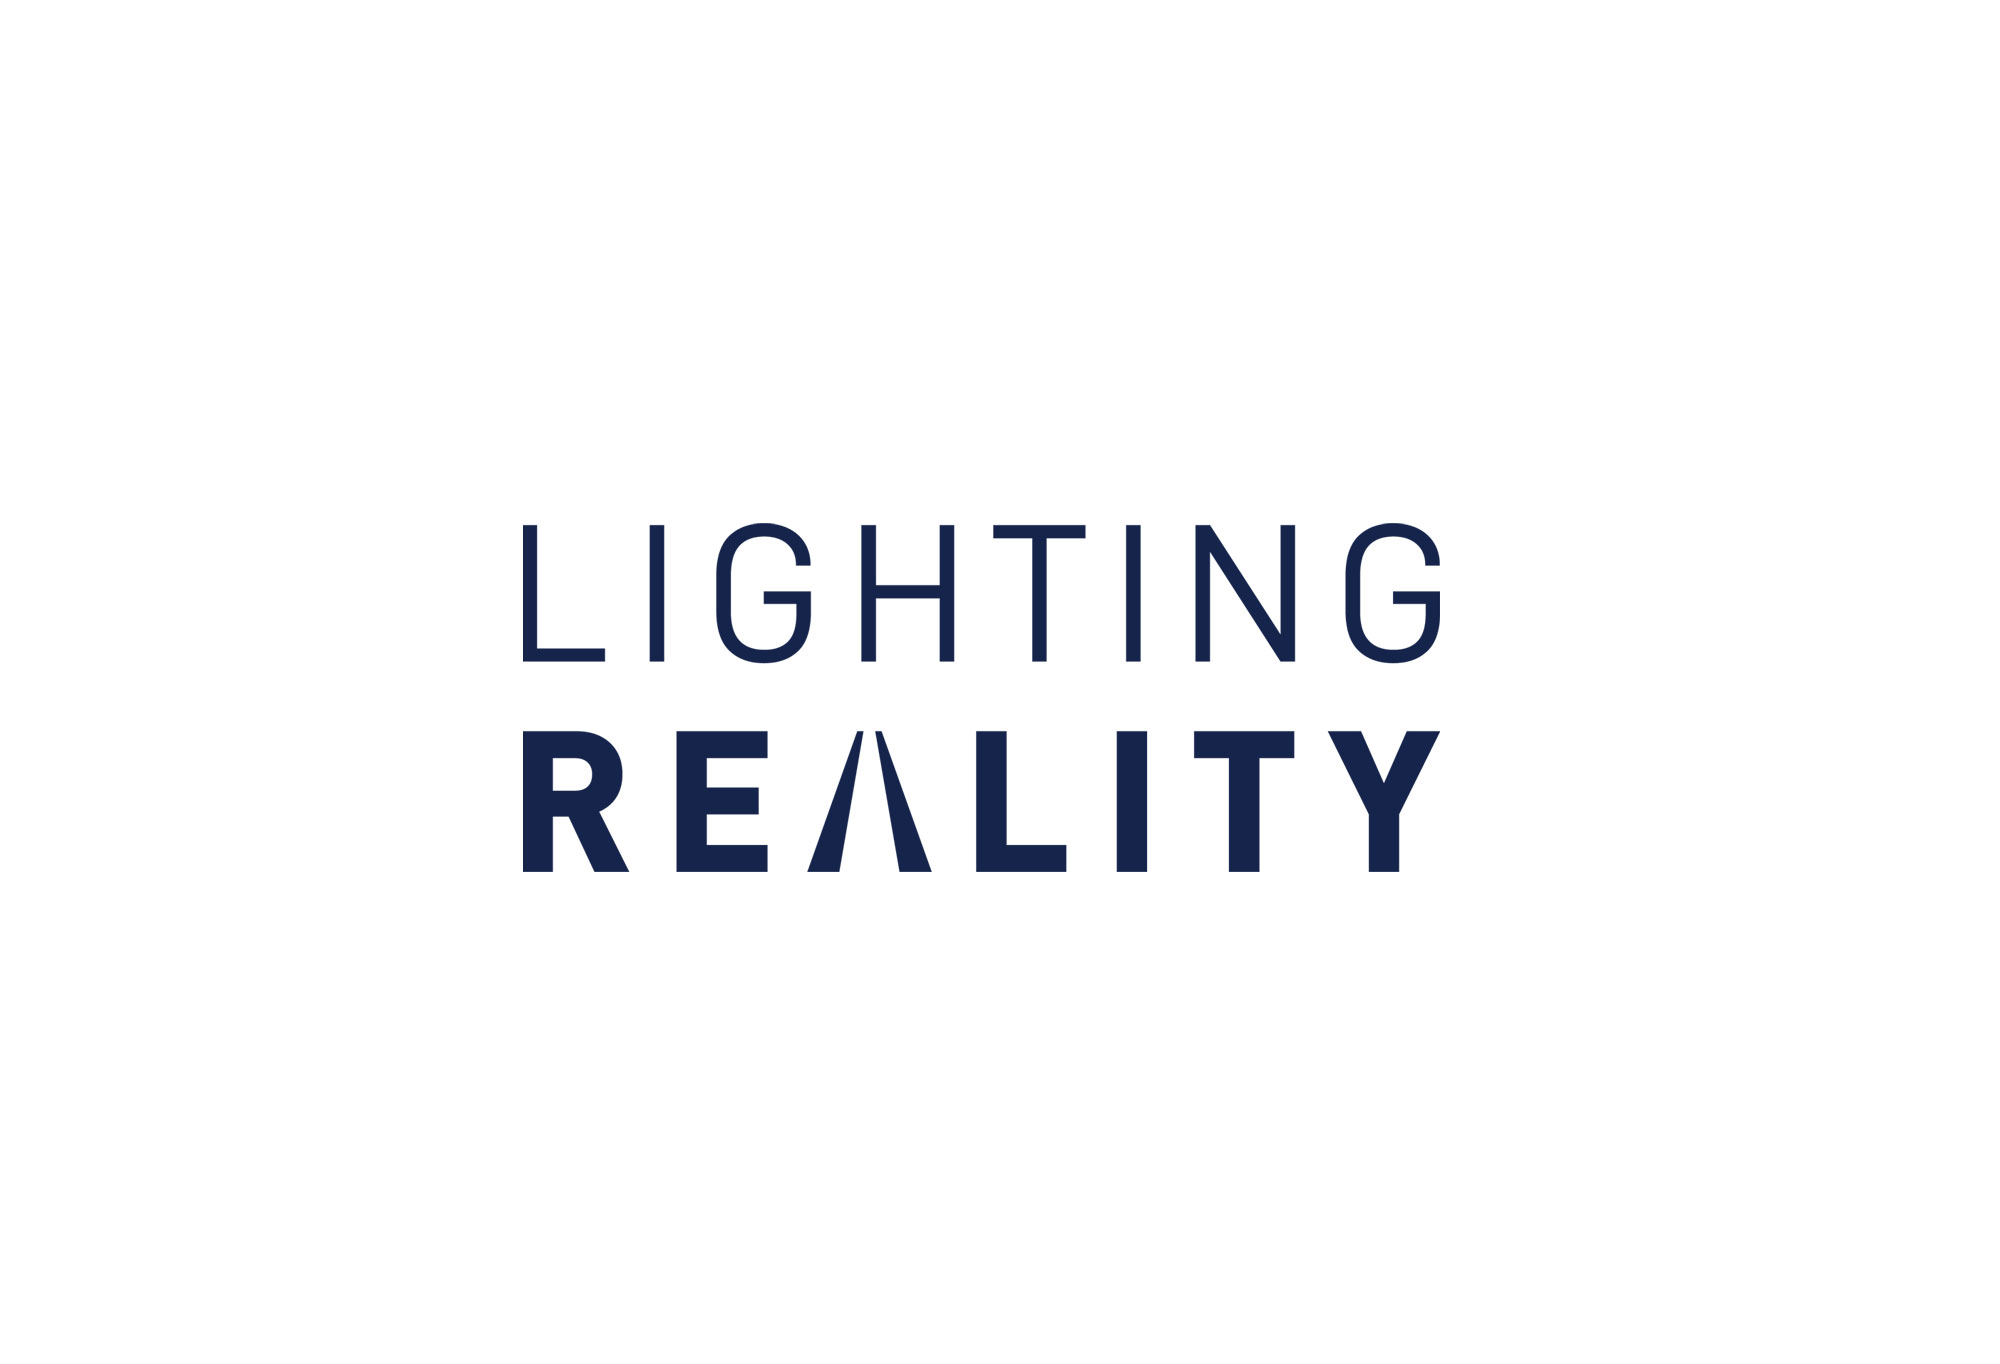 Lighting Reality